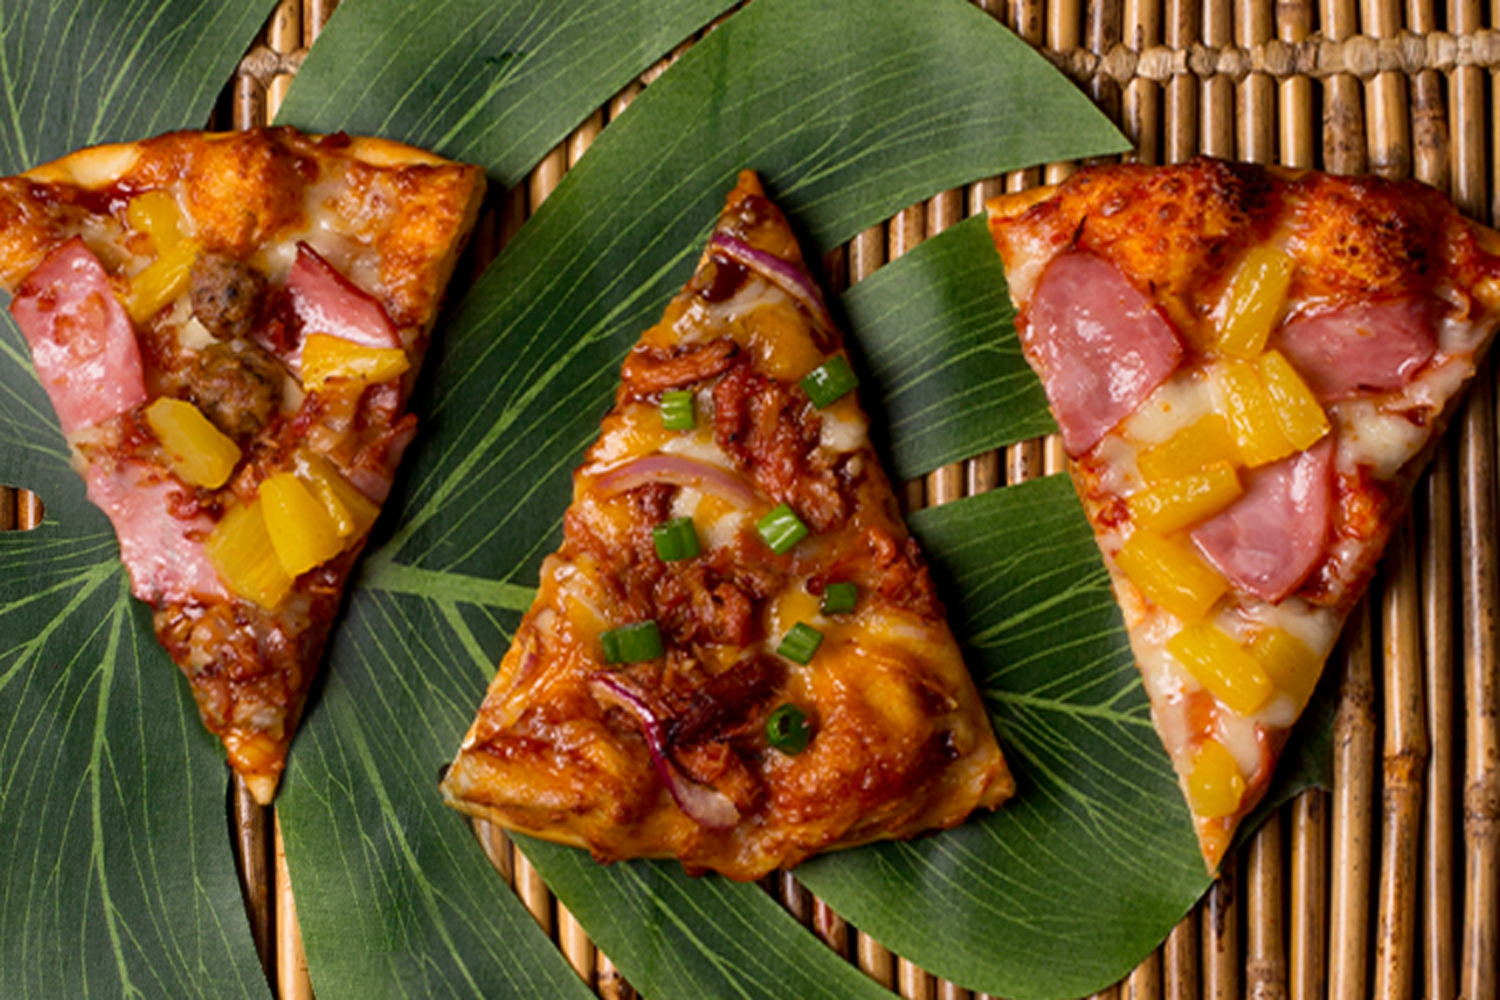 Shakey's Promotion Image - Tropical Trio of Pizzas